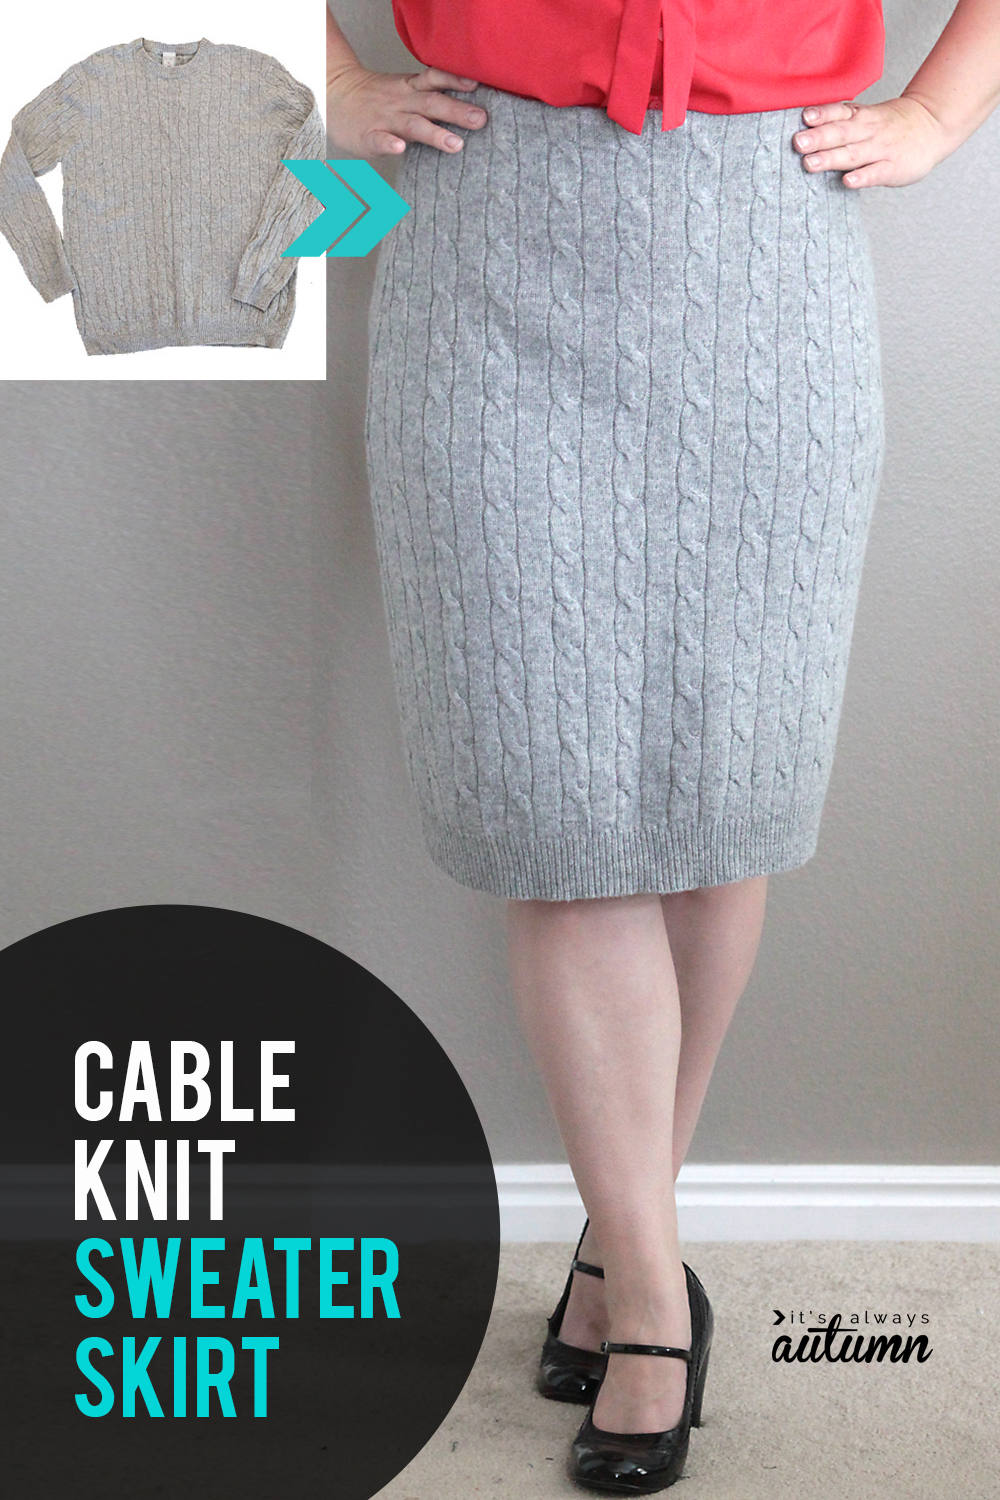 How to refashion a cable knit sweater into a cute cable knit skirt! Easy sewing tutorial.